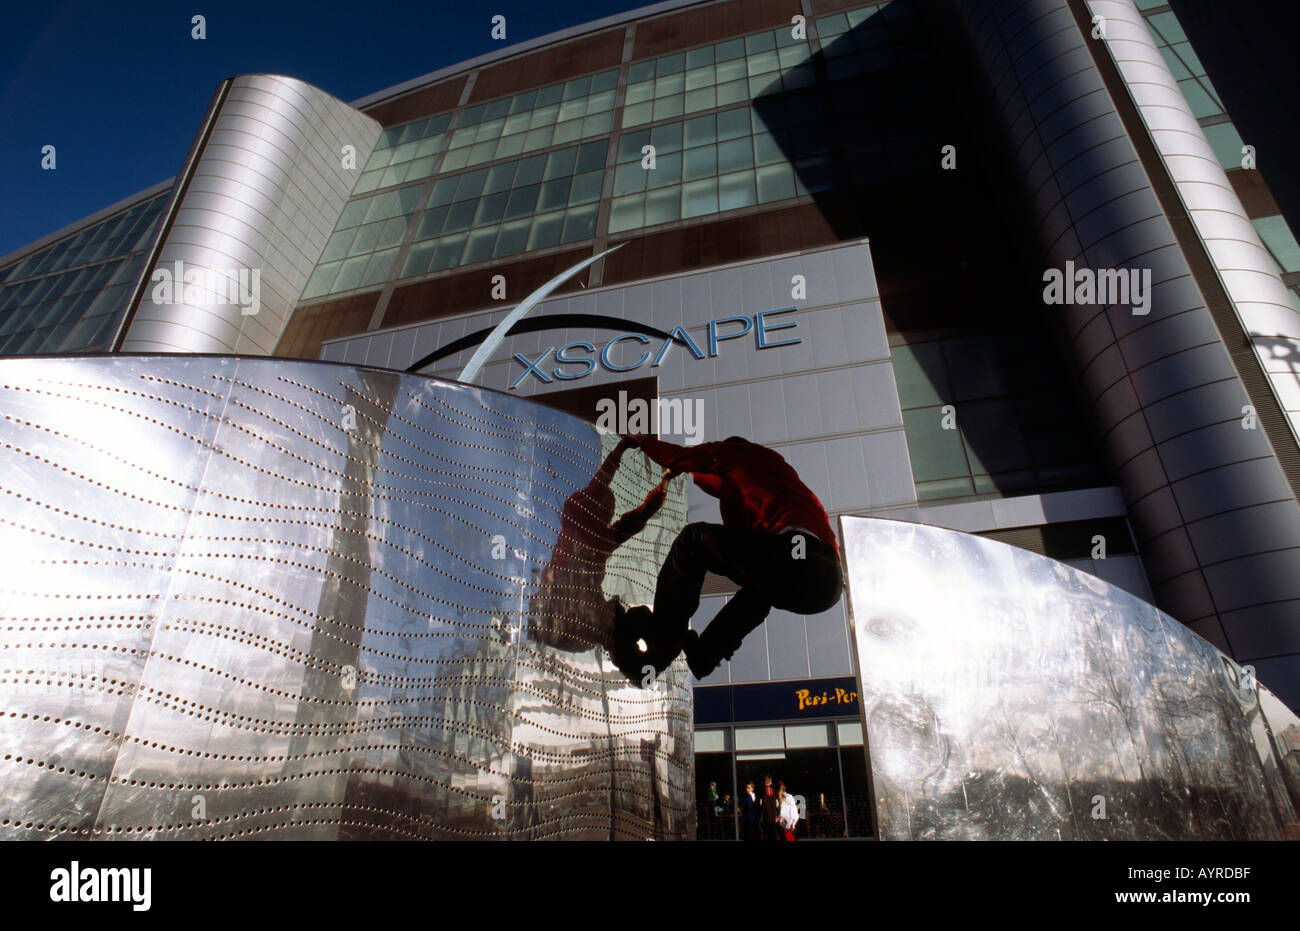 Doug Blane practicing Le Parkour climbing freerunning outside the Xscape snow dome Central Milton Keynes - Stock Image